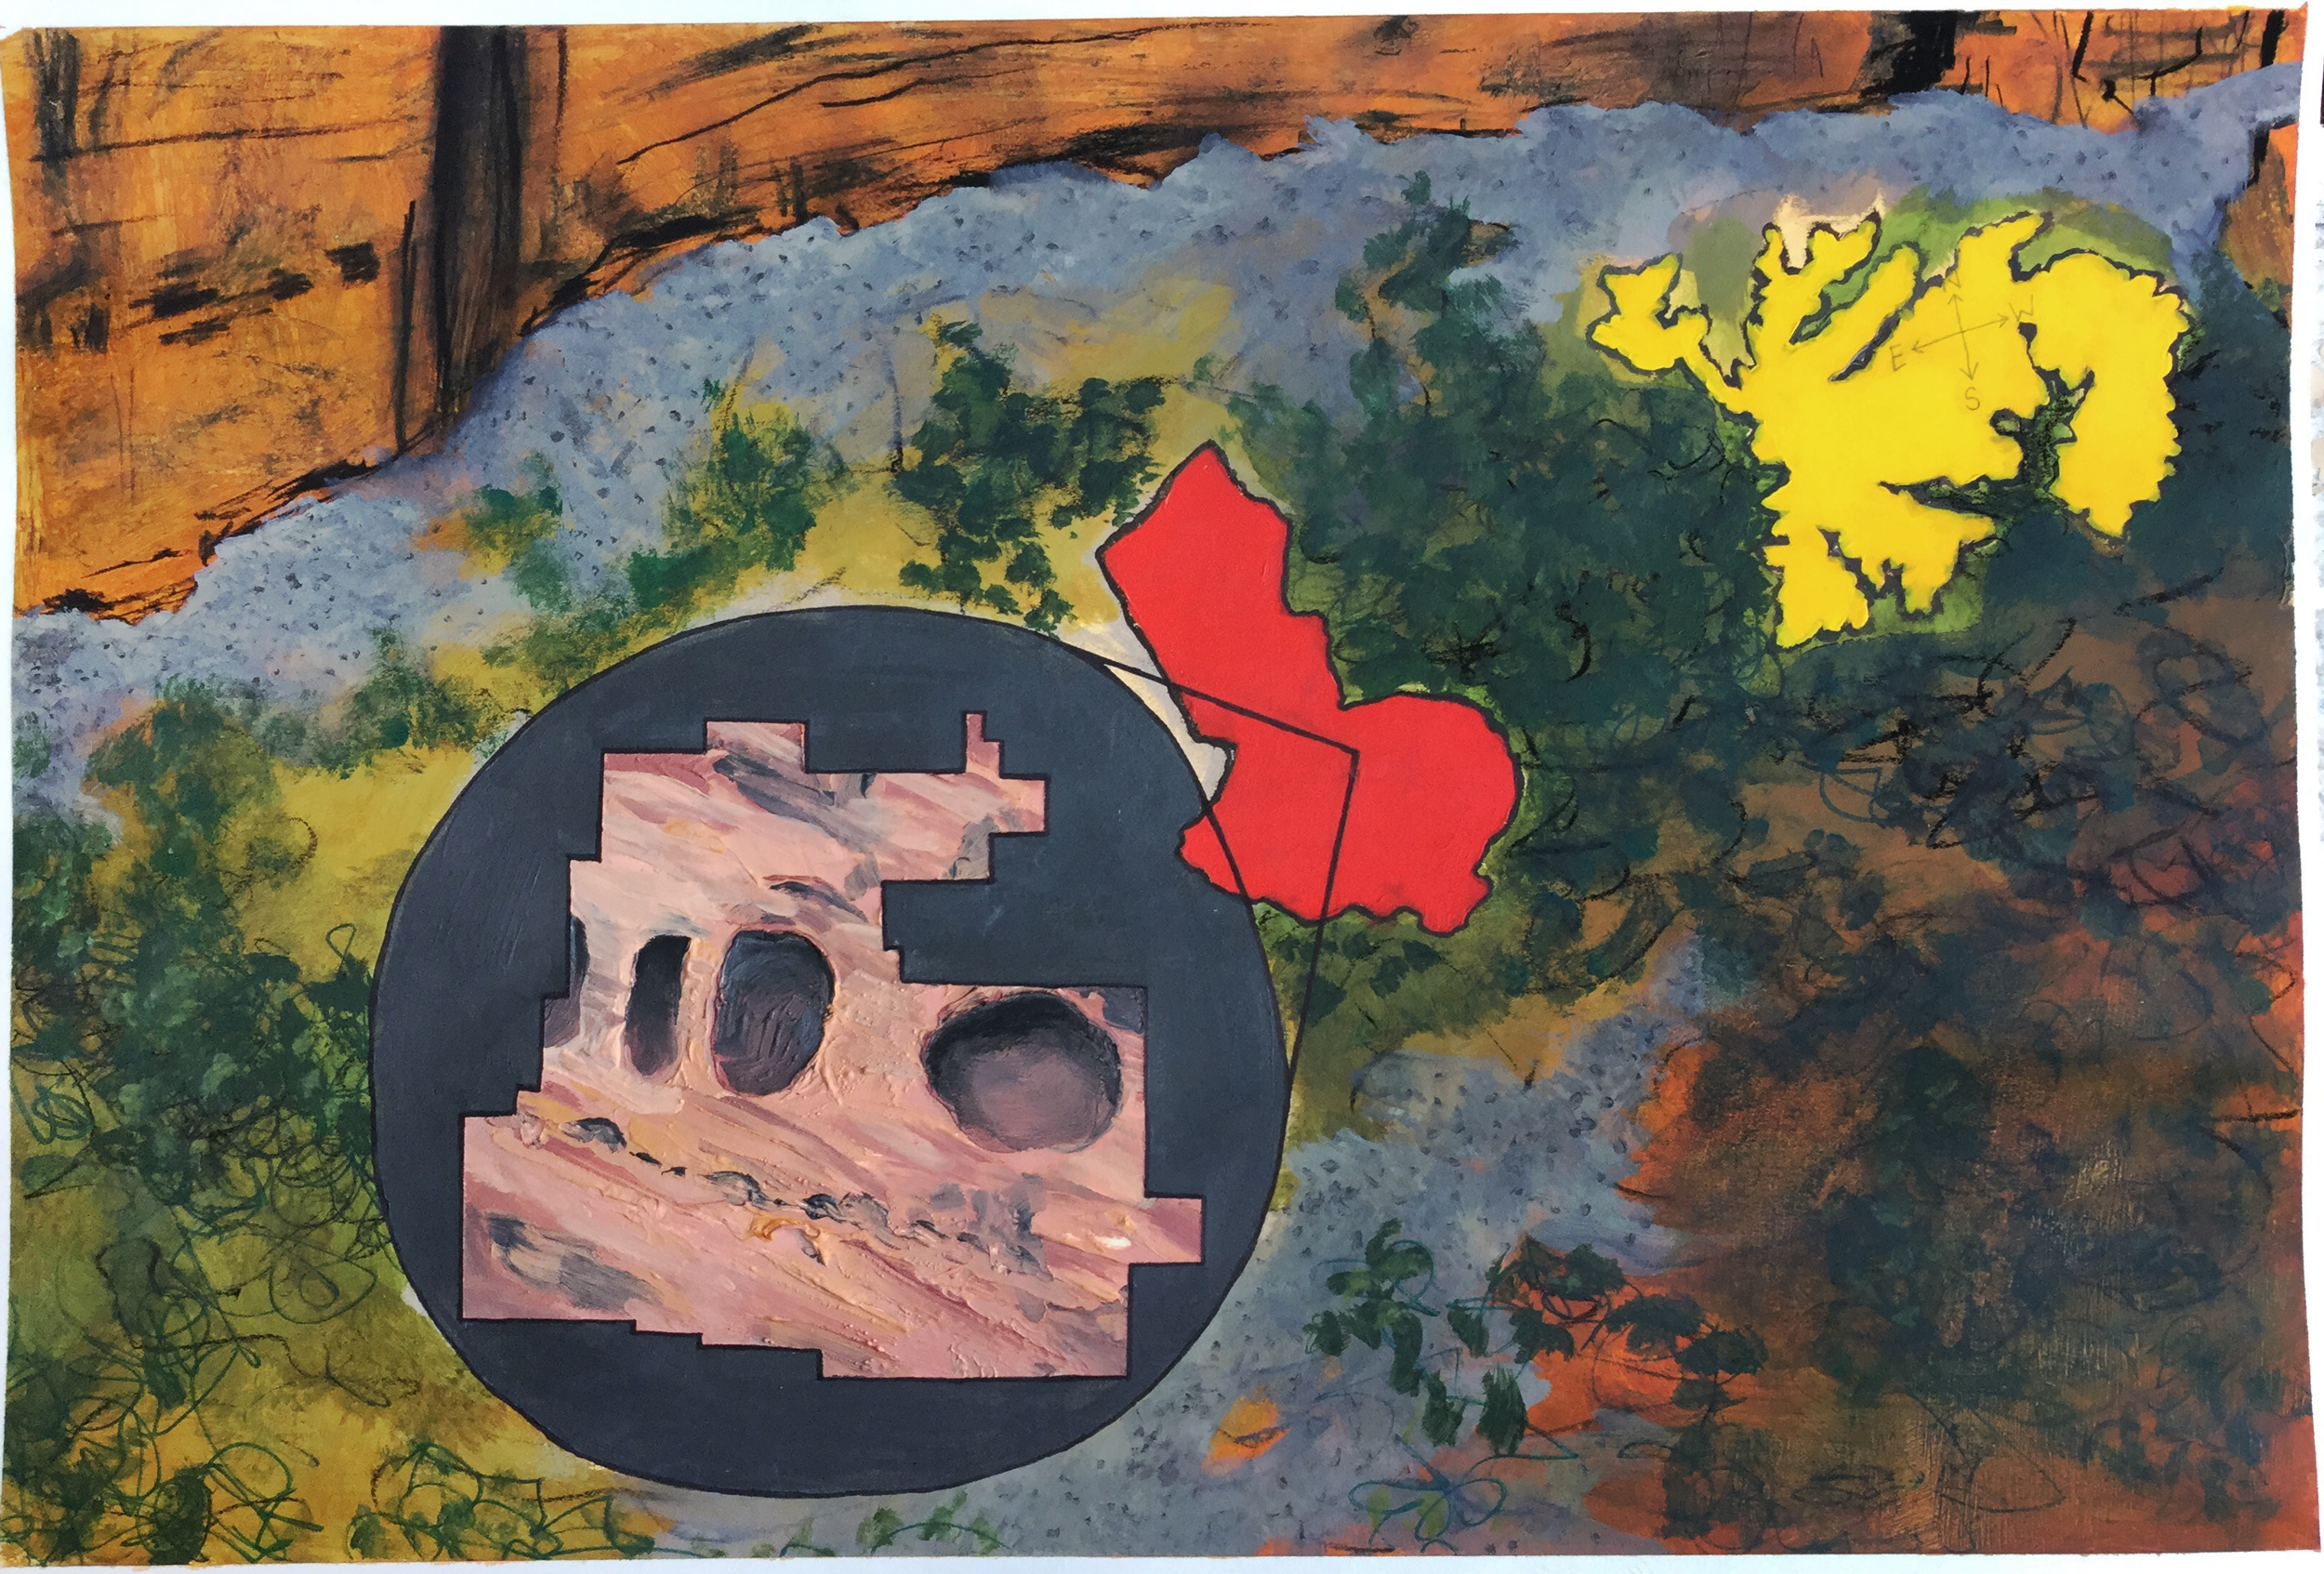 River Runs Underground